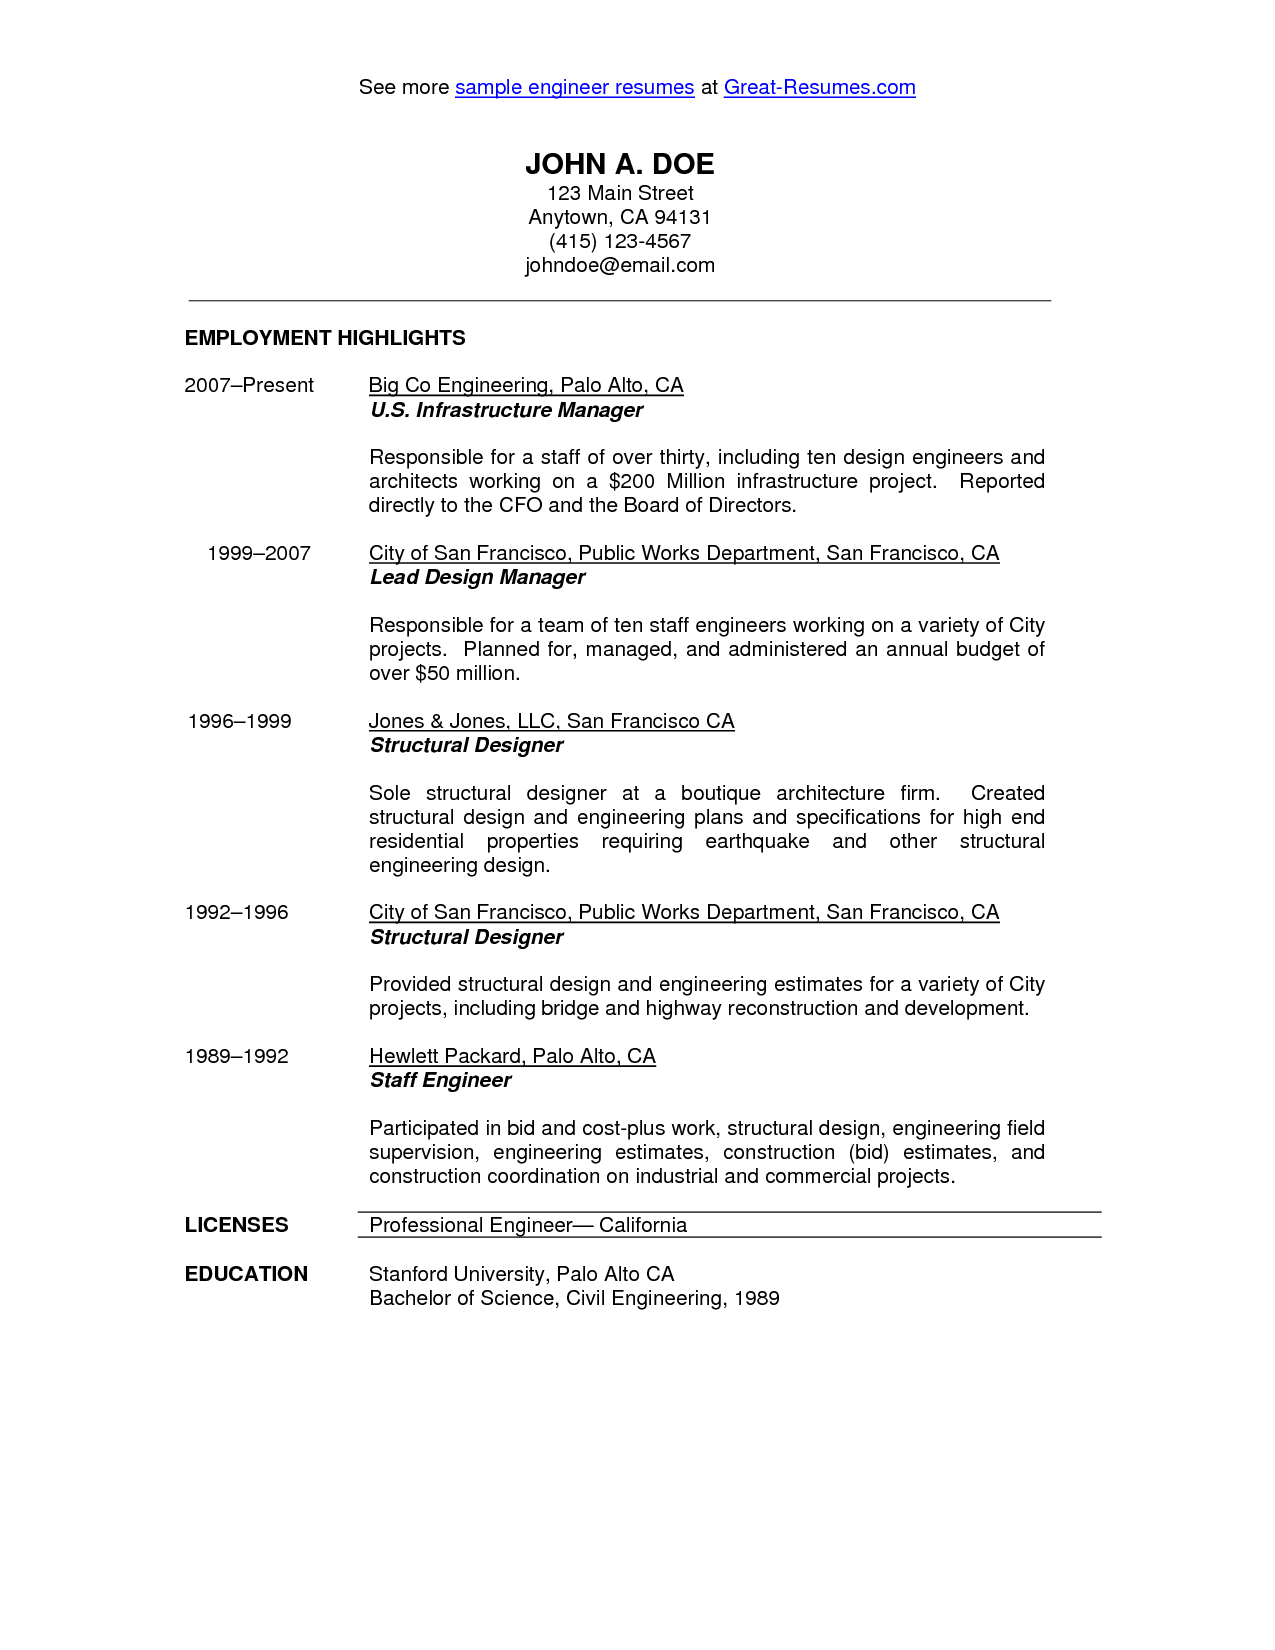 Resume Education Example Impressive Civil Engineer Resume Sample  Httpwwwresumecareercivil 2018